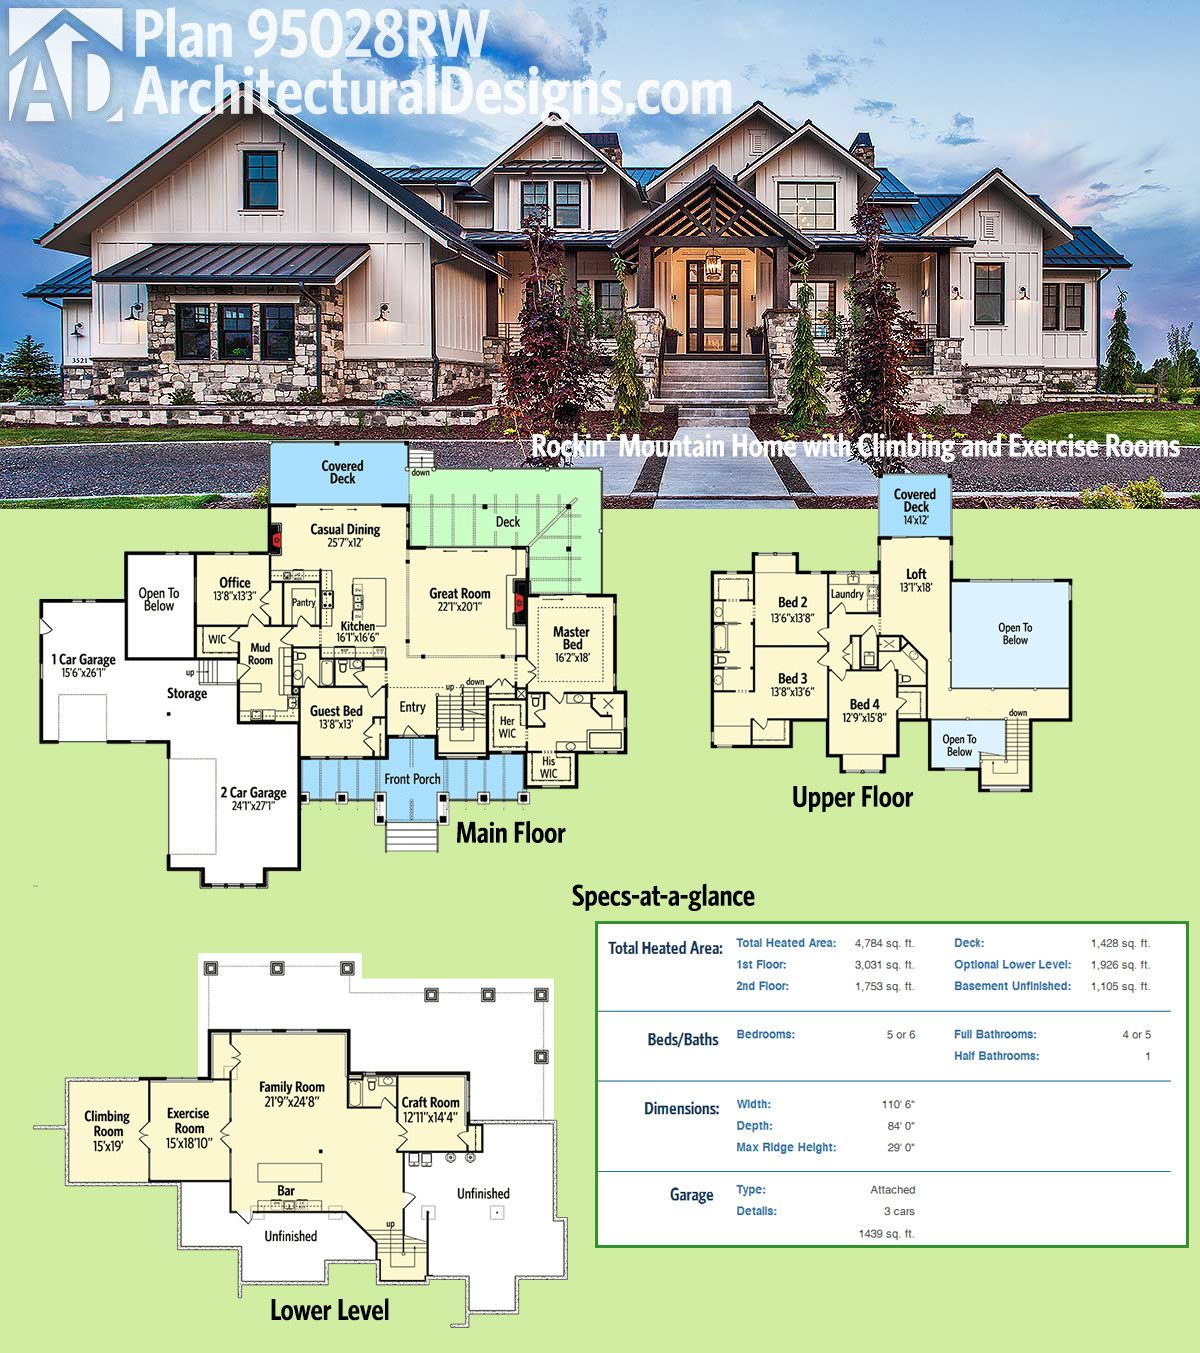 Plan 95028rw Rockin Mountain Home With Climbing And Exercise Rooms Architectural Design House Plans House Plans Mountain House Plans